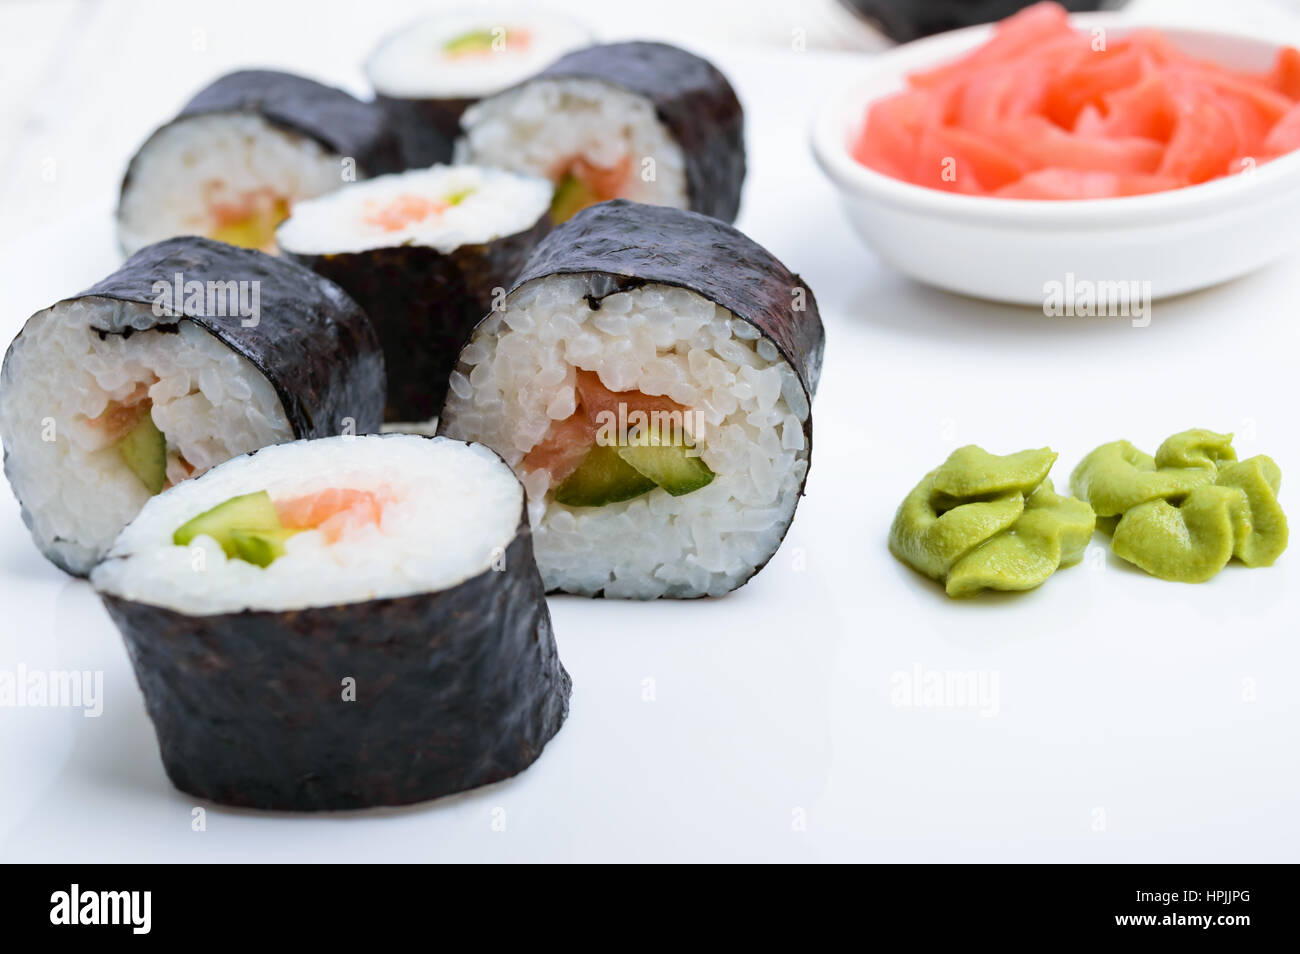 Traditional eastern dish with salmon sushi rolls on a white plate. Close-up. - Stock Image